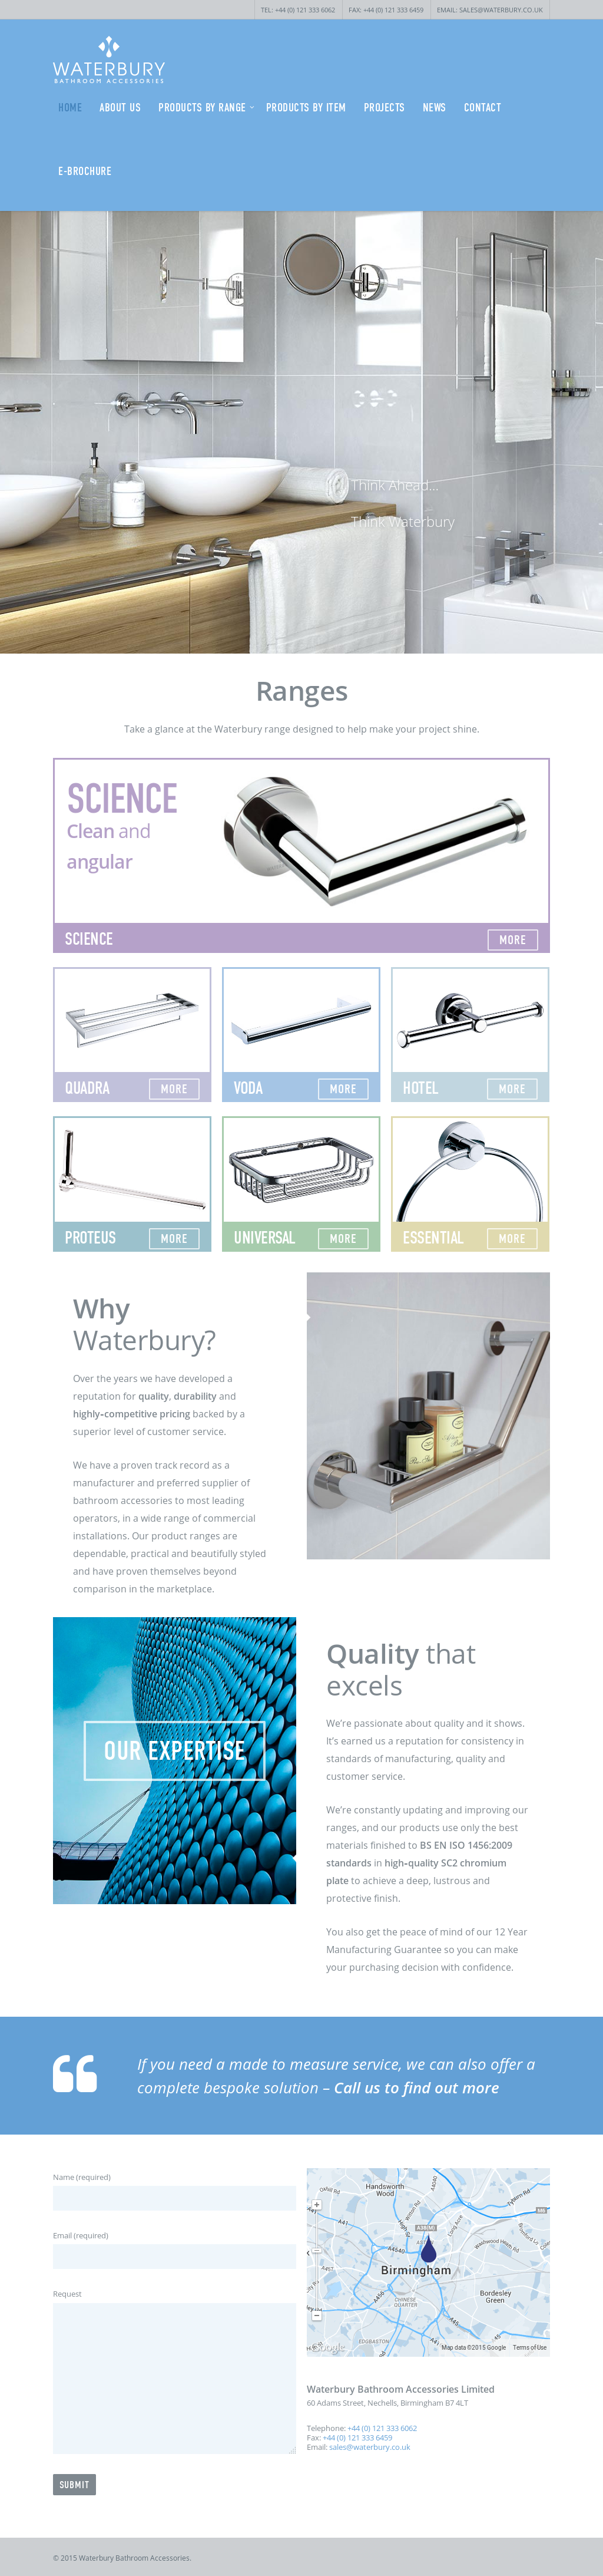 WATERBURY BATHROOM ACCESSORIES Competitors, Revenue and Employees ...